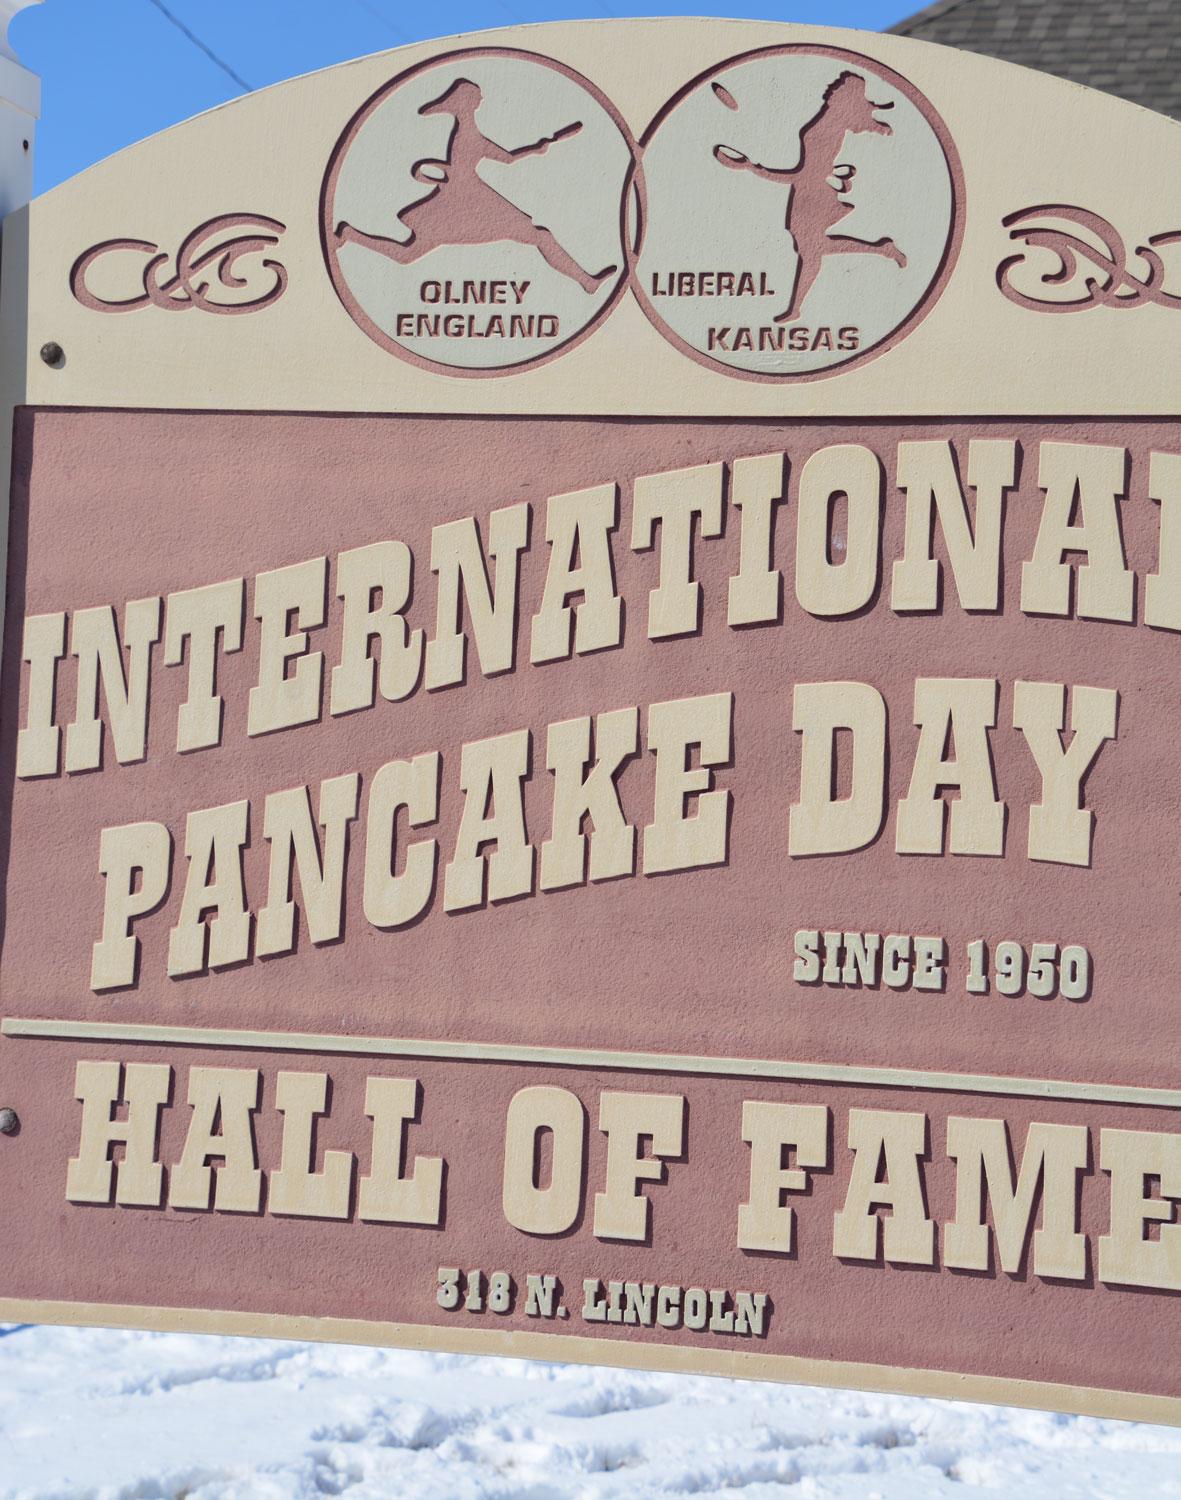 International+Pancake+Day+is+celebrated+once+a+year+between+Liberal+and+Olney%2C+England.+This+was+the+70+anniversary+of+the+holiday.